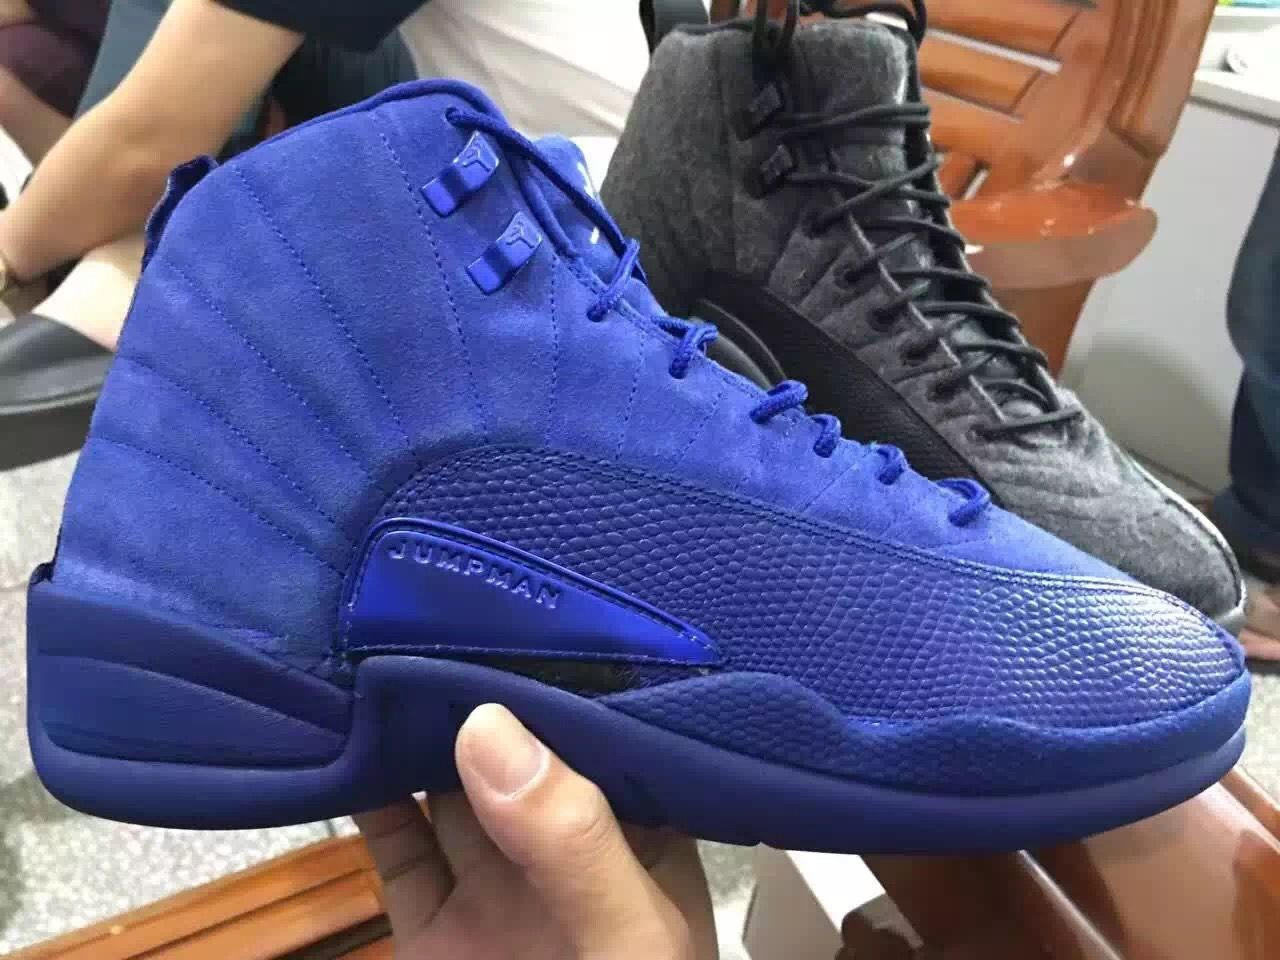 f18c0533636009 More Images Of The Premium Air Jordan 12 Deep Royal Blue